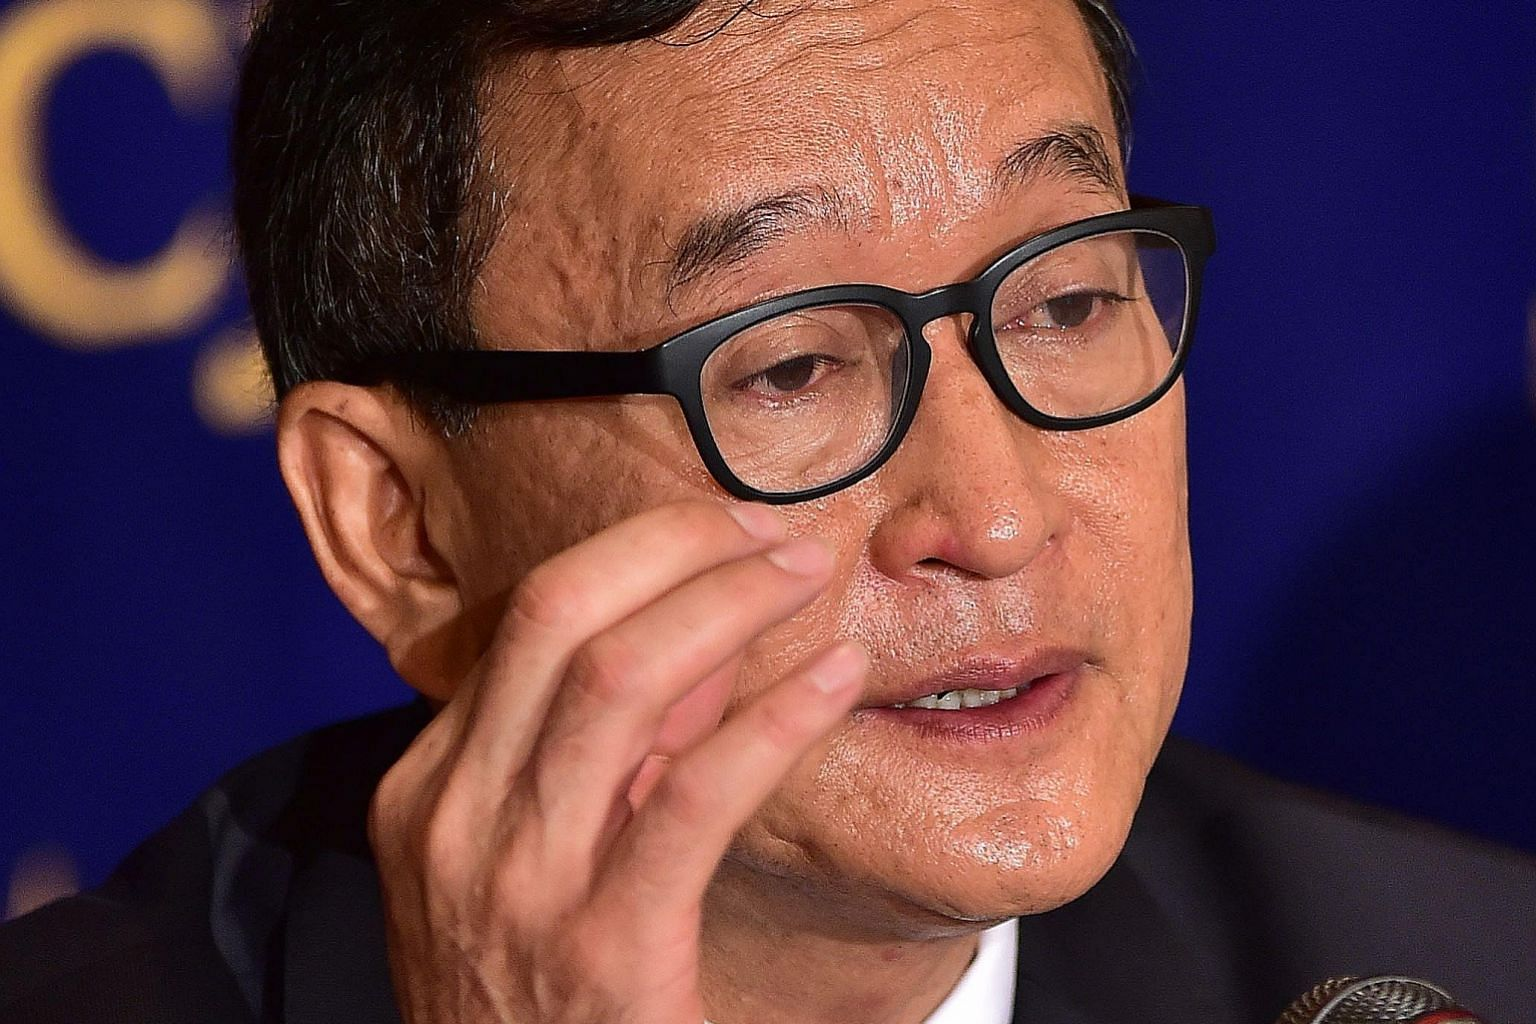 Cambodian opposition leader Sam Rainsy received a royal pardon in 2013 for his conviction on a defamation charge.